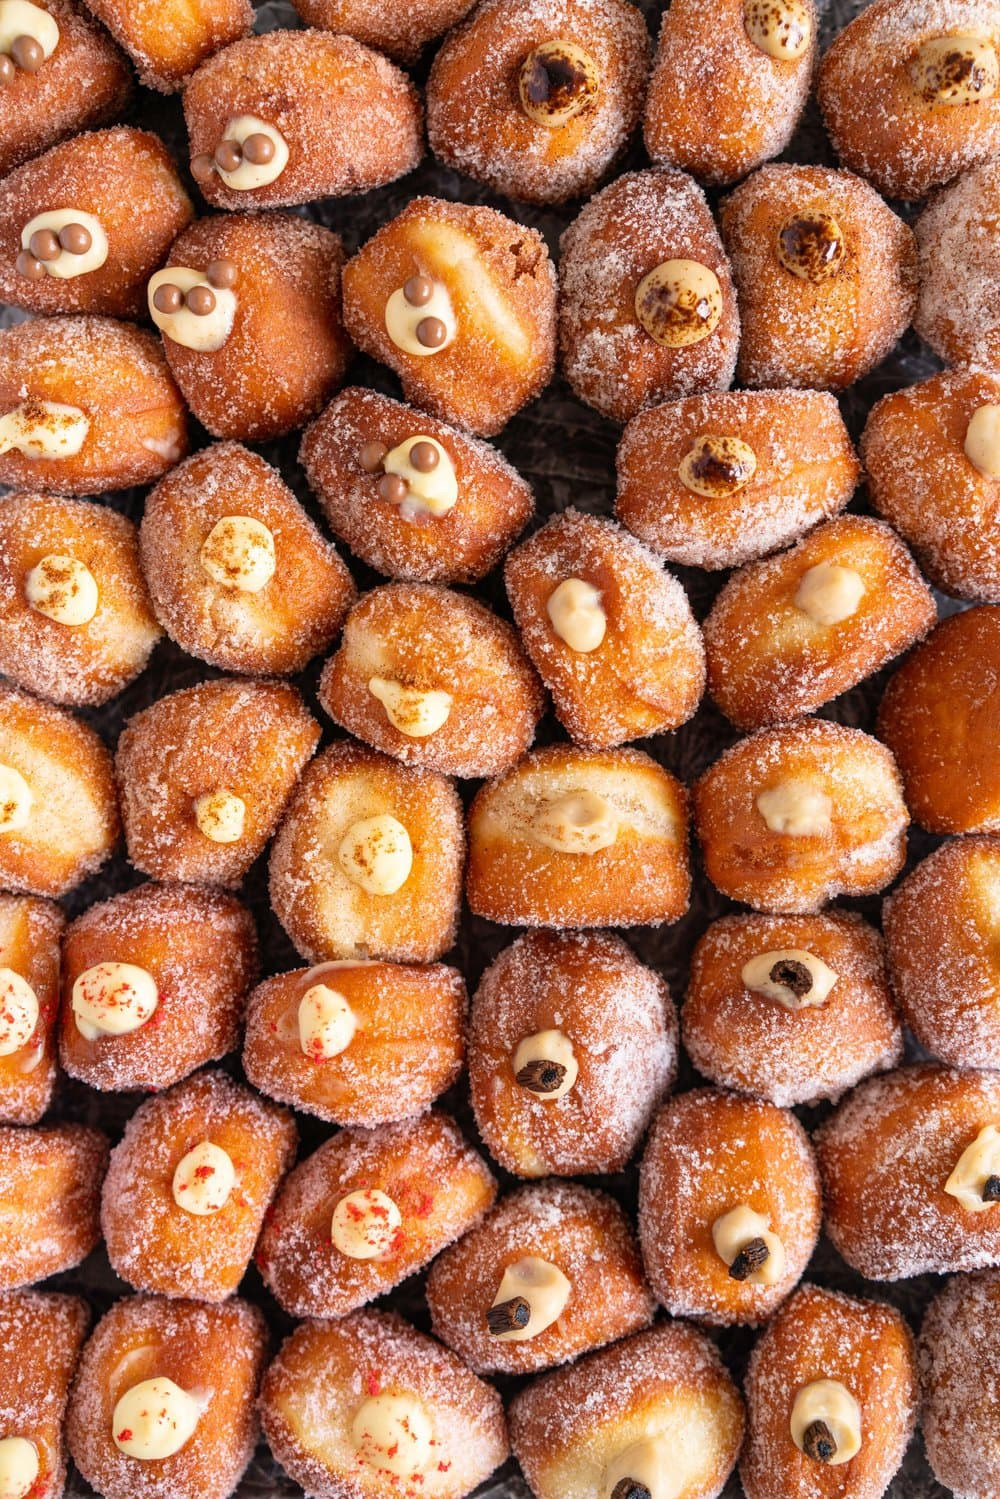 Perfectly fluffy mini brioche doughnuts are fried to perfection, rolled in sugar, and filled with flavoured pastry cream. A whole tray of mini doughnuts would be perfect for a special occasion or gathering, as they are a hit with all ages! #doughnut #briochedoughnut